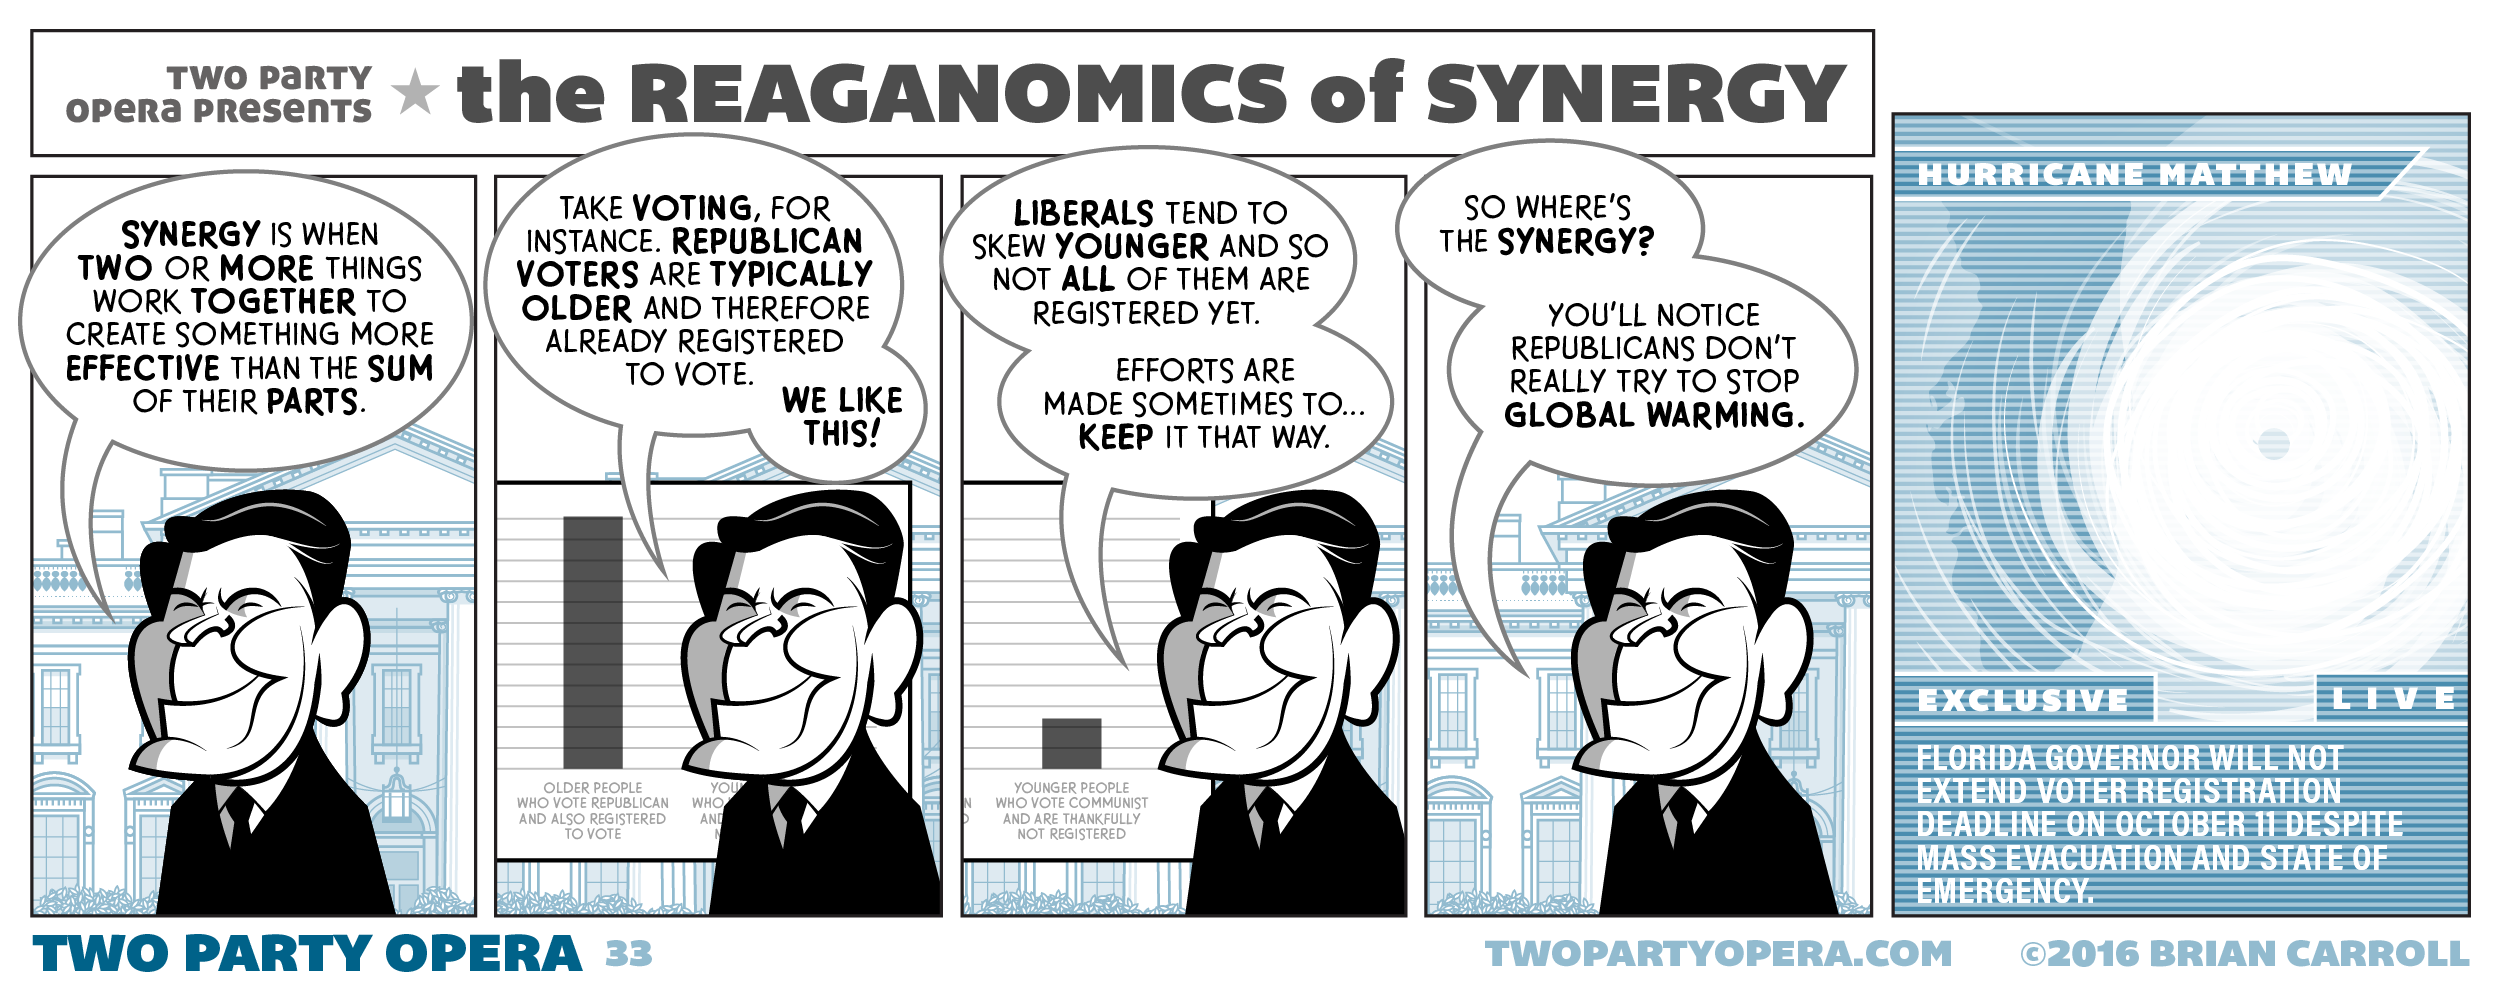 The Reaganomics of Synergy